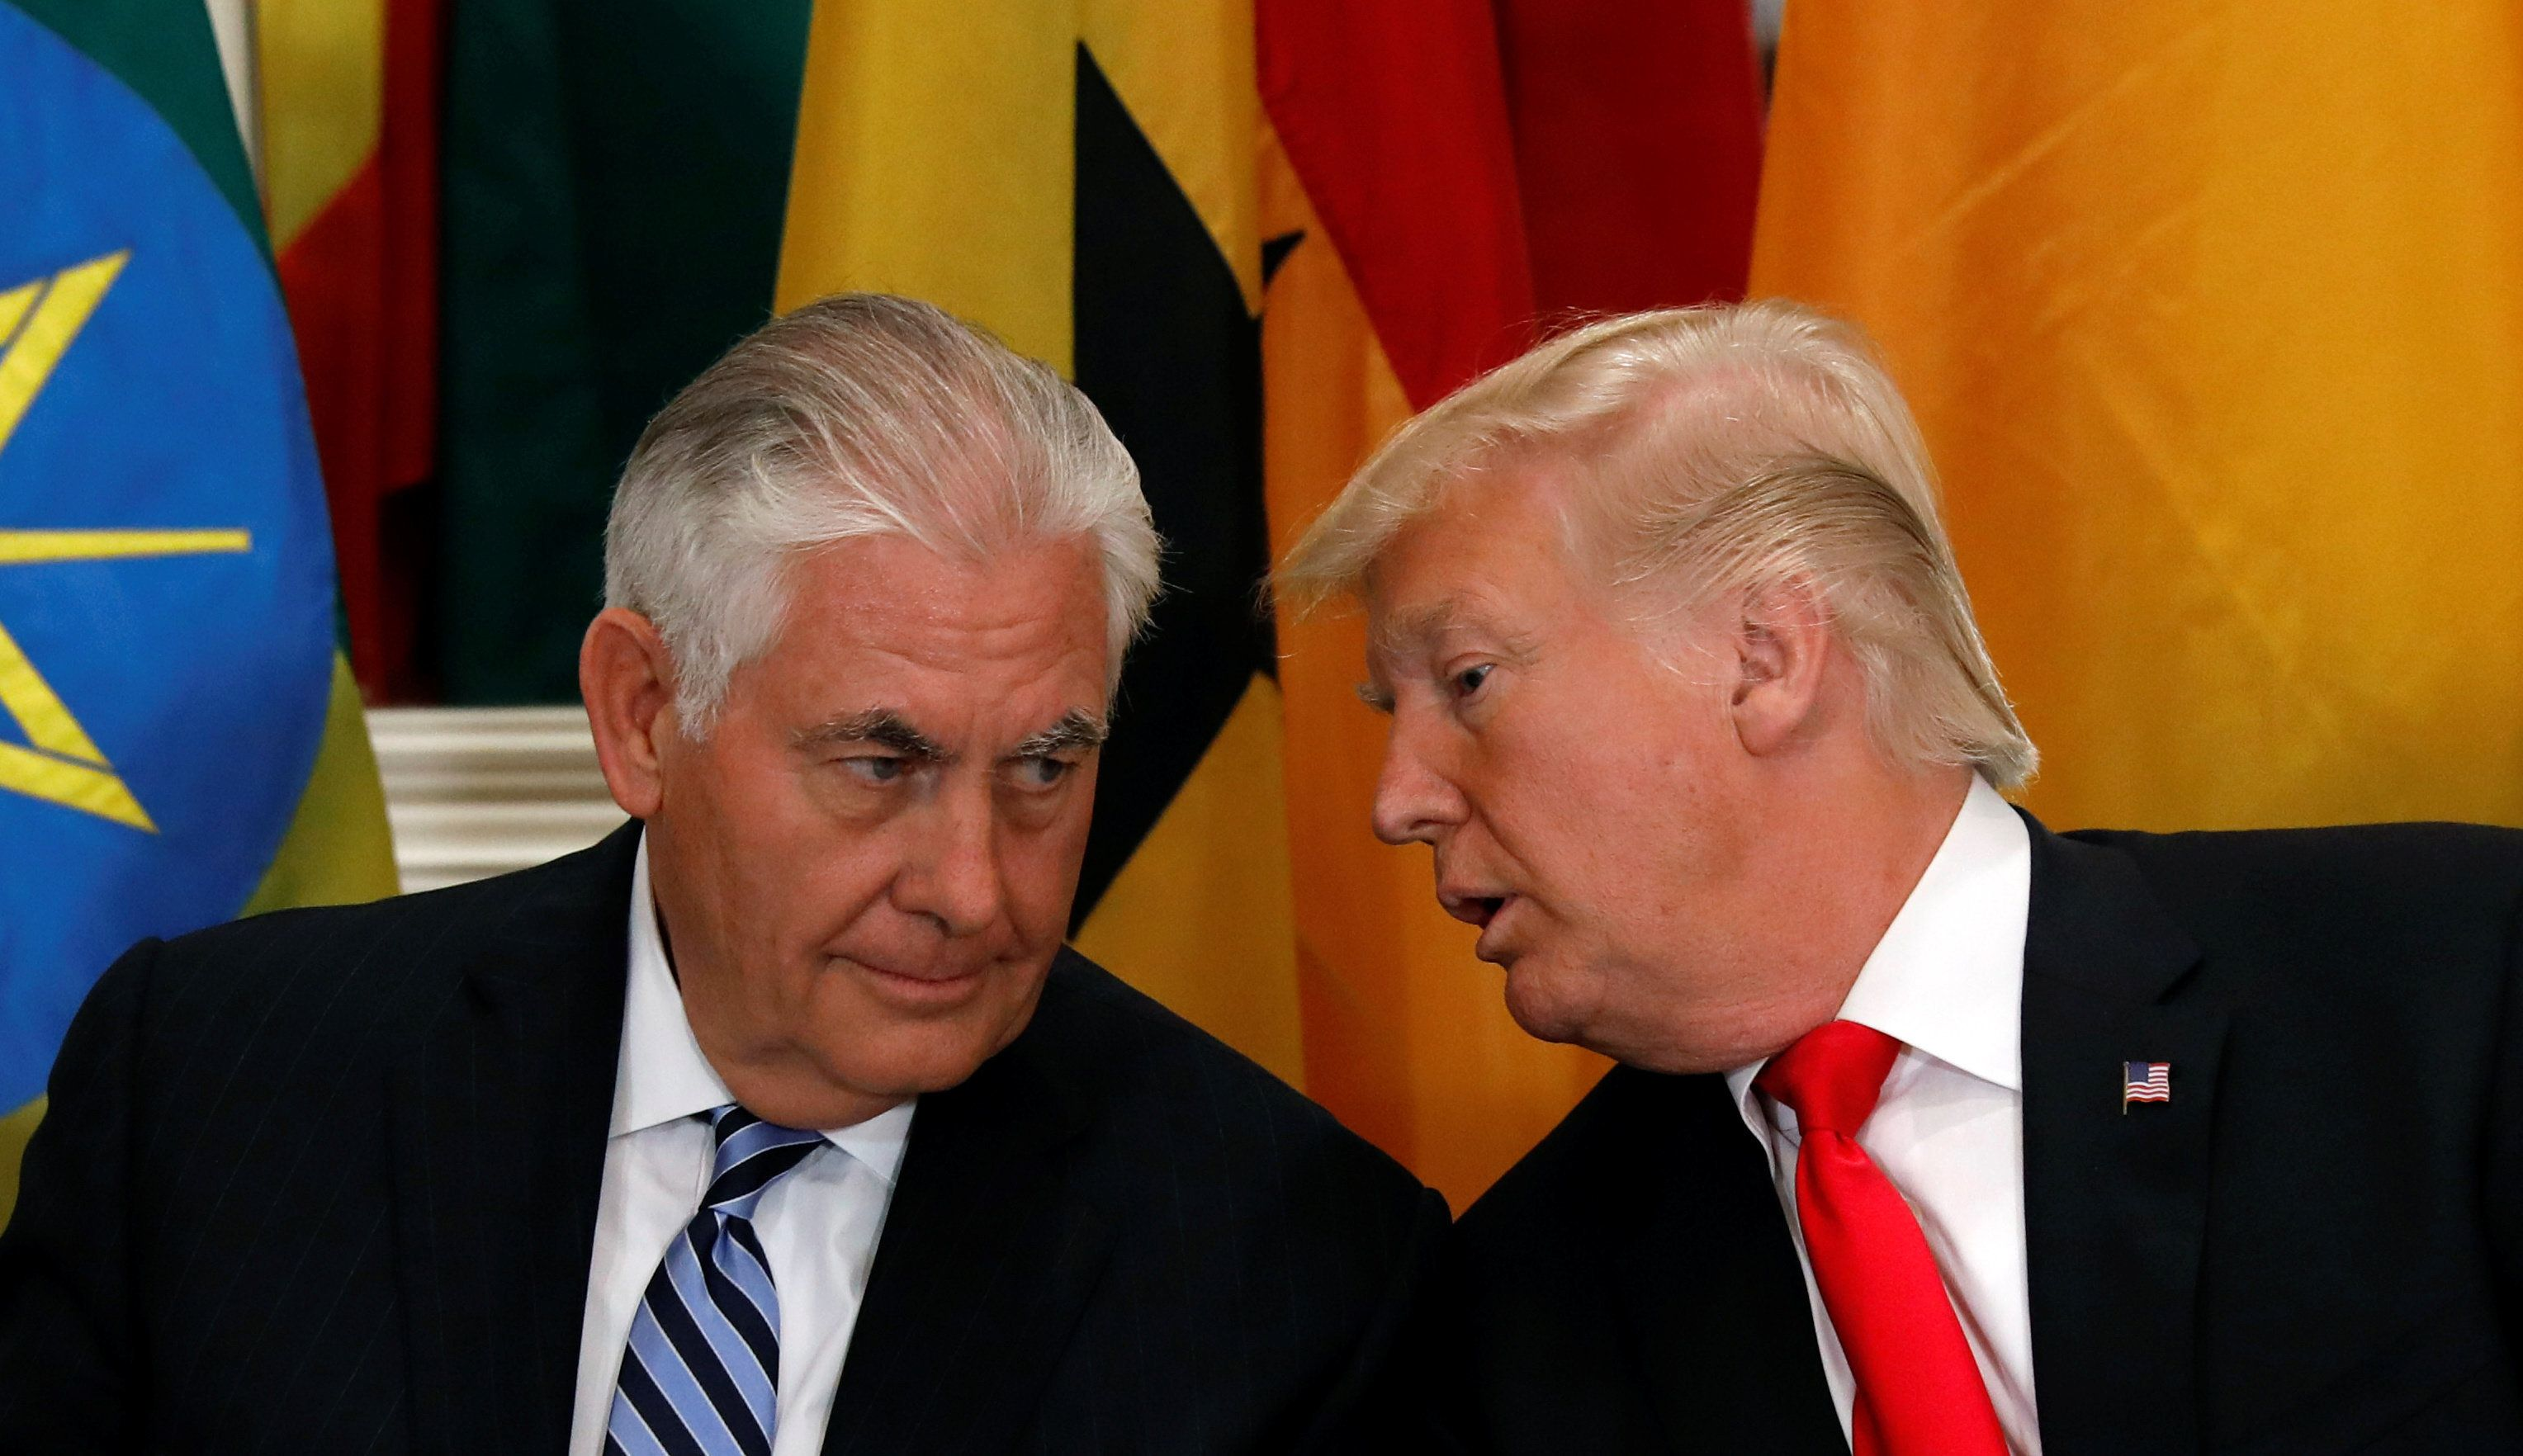 Amid crises, tensions between Pres. Trump and Tillerson persist